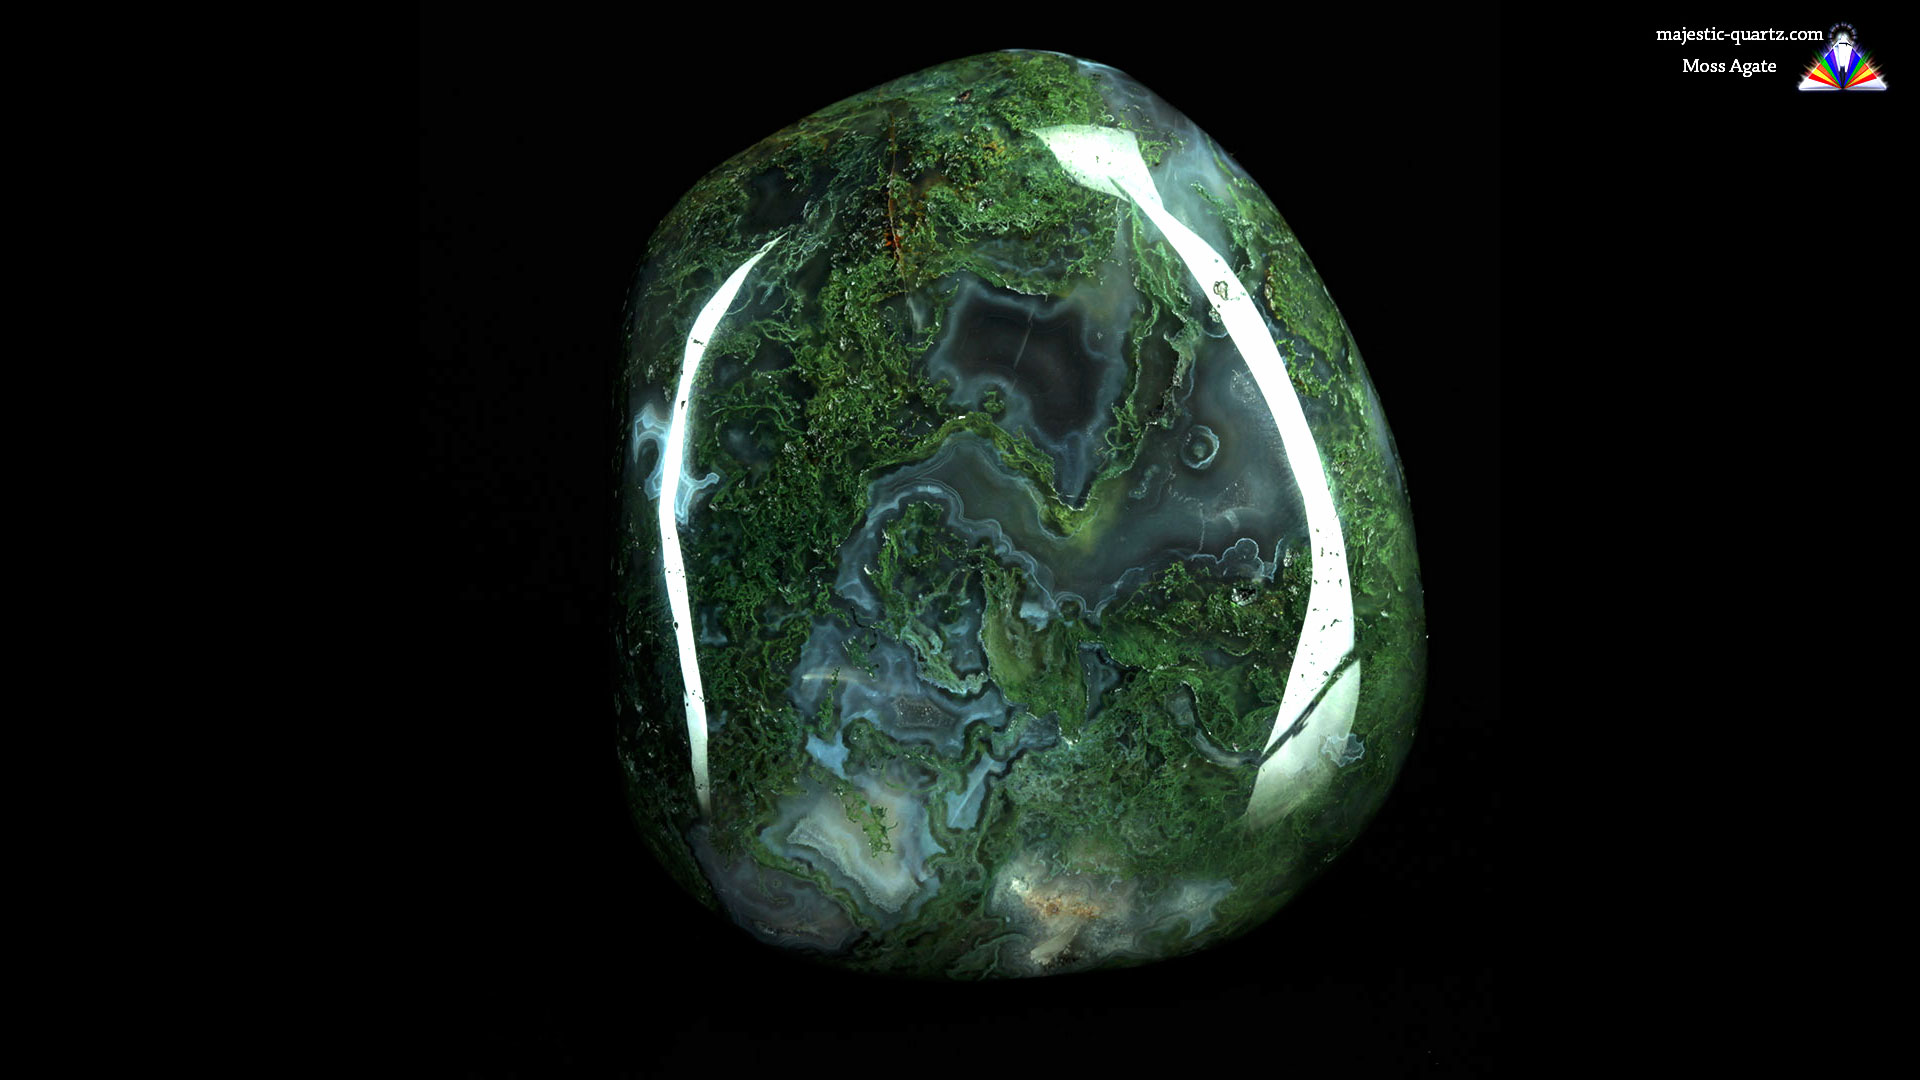 Moss Moss Agate Properties Amp Photos Crystal Information